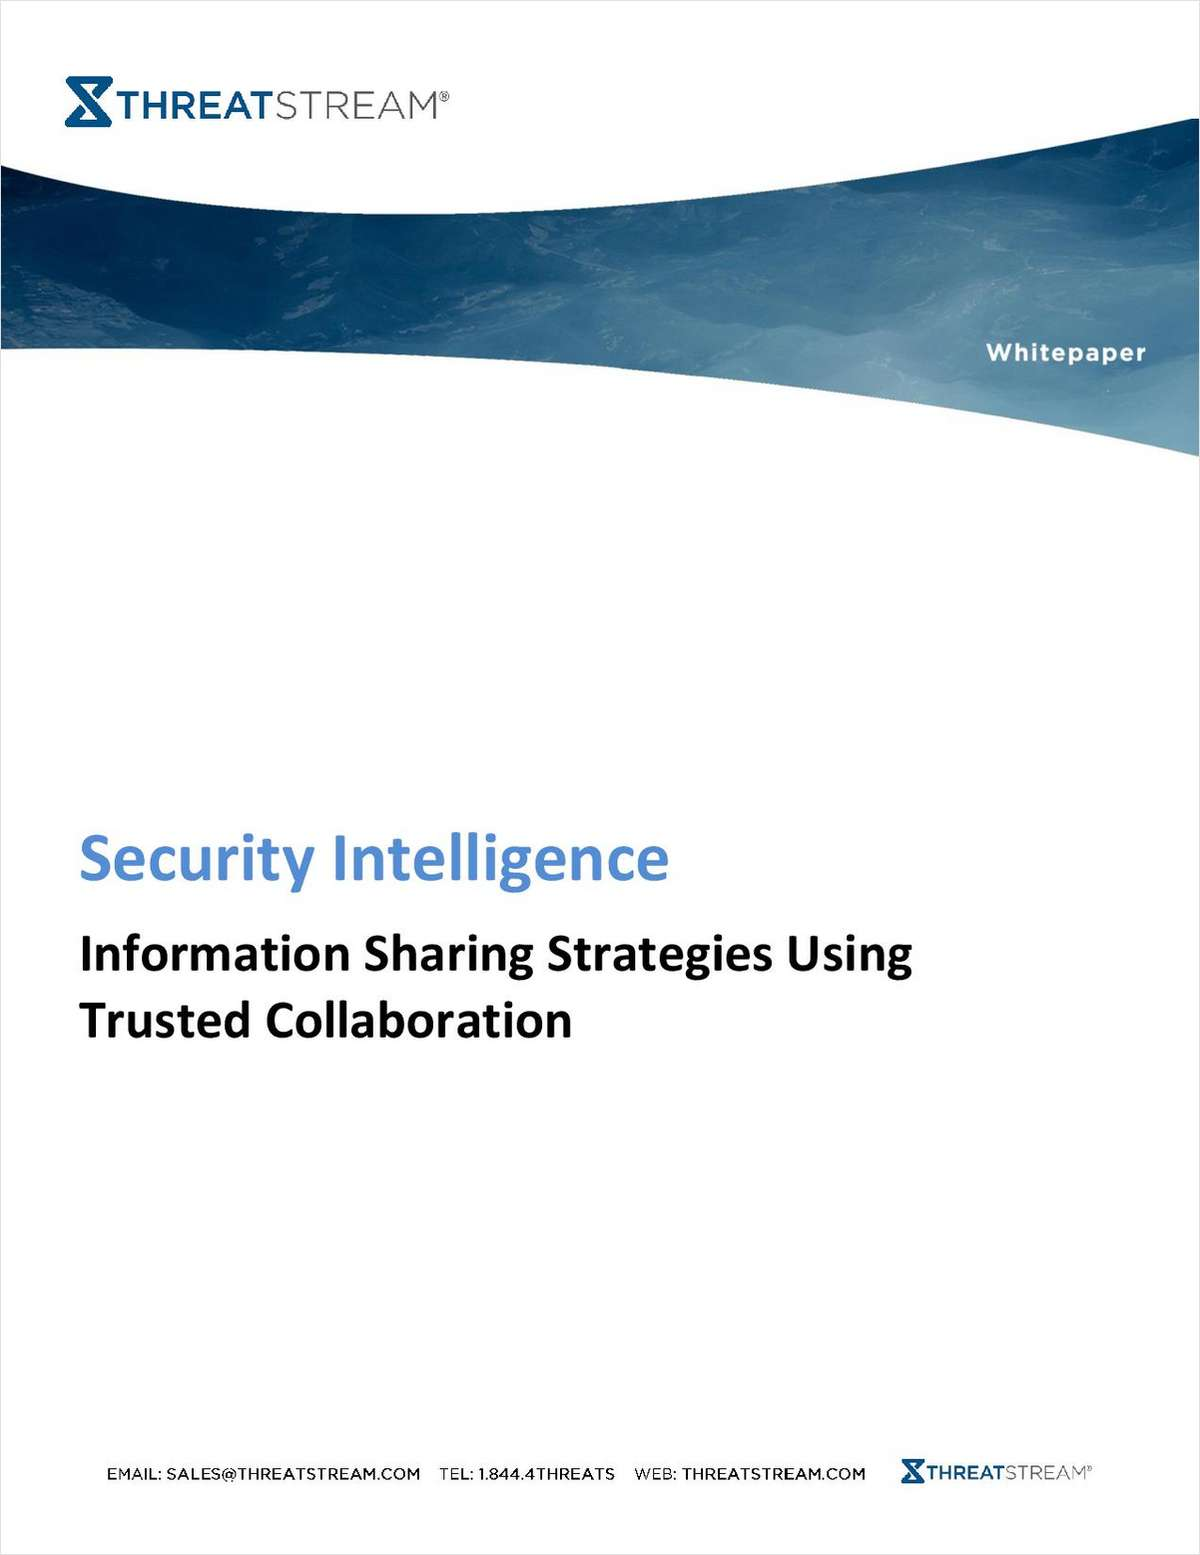 Security Intelligence: Information Sharing Strategies Using Trusted Collaboration